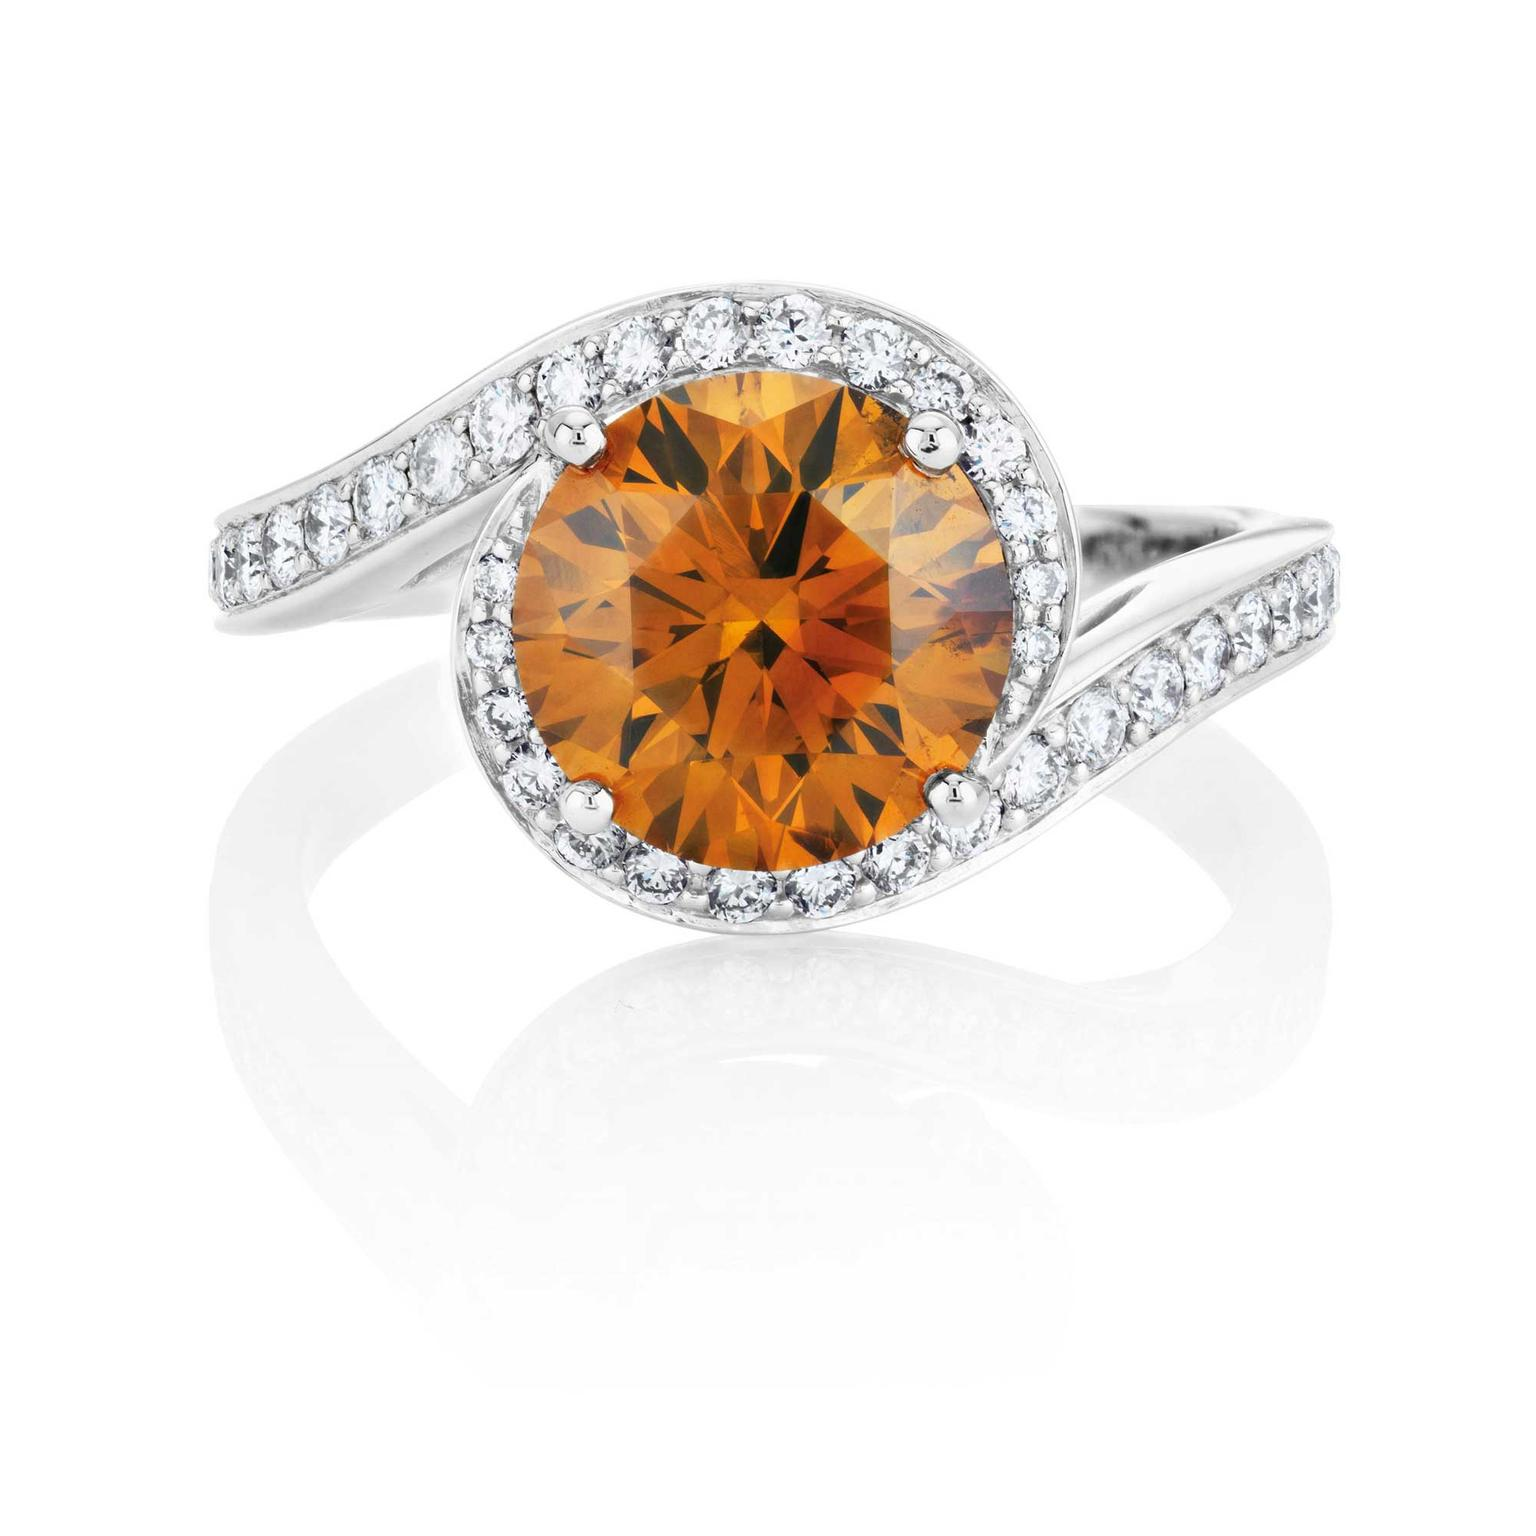 De Beers Caress round brilliant Fancy Deep brown orange diamond ring